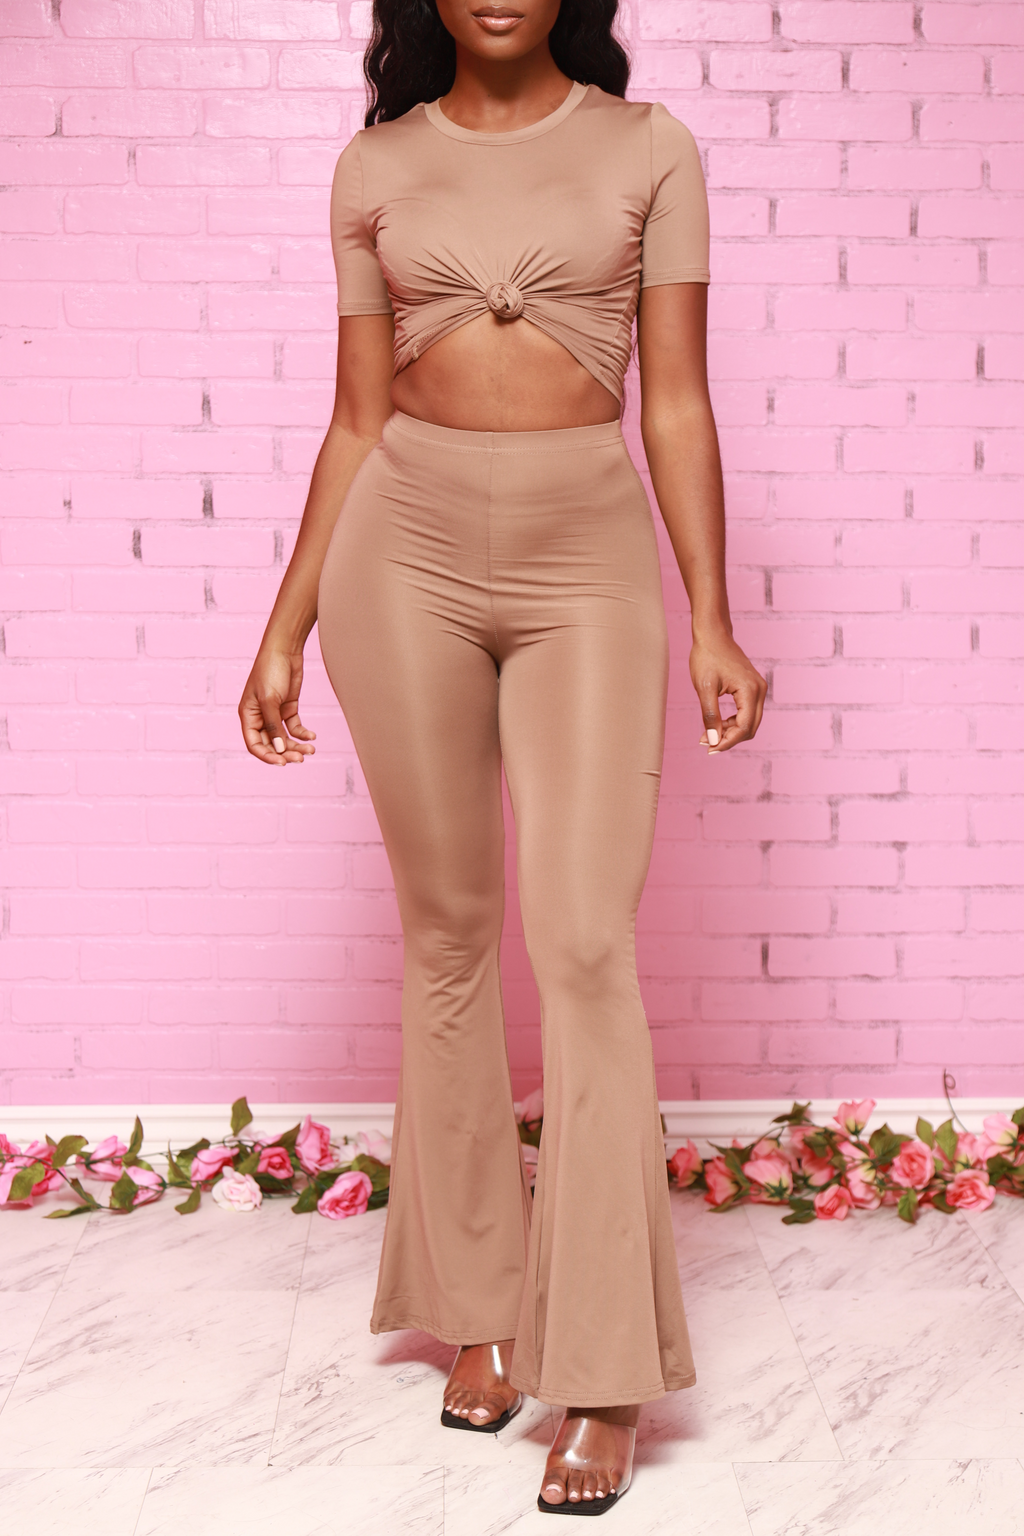 Let It Flow Flare Pants Set - Taupe - Swank A Posh